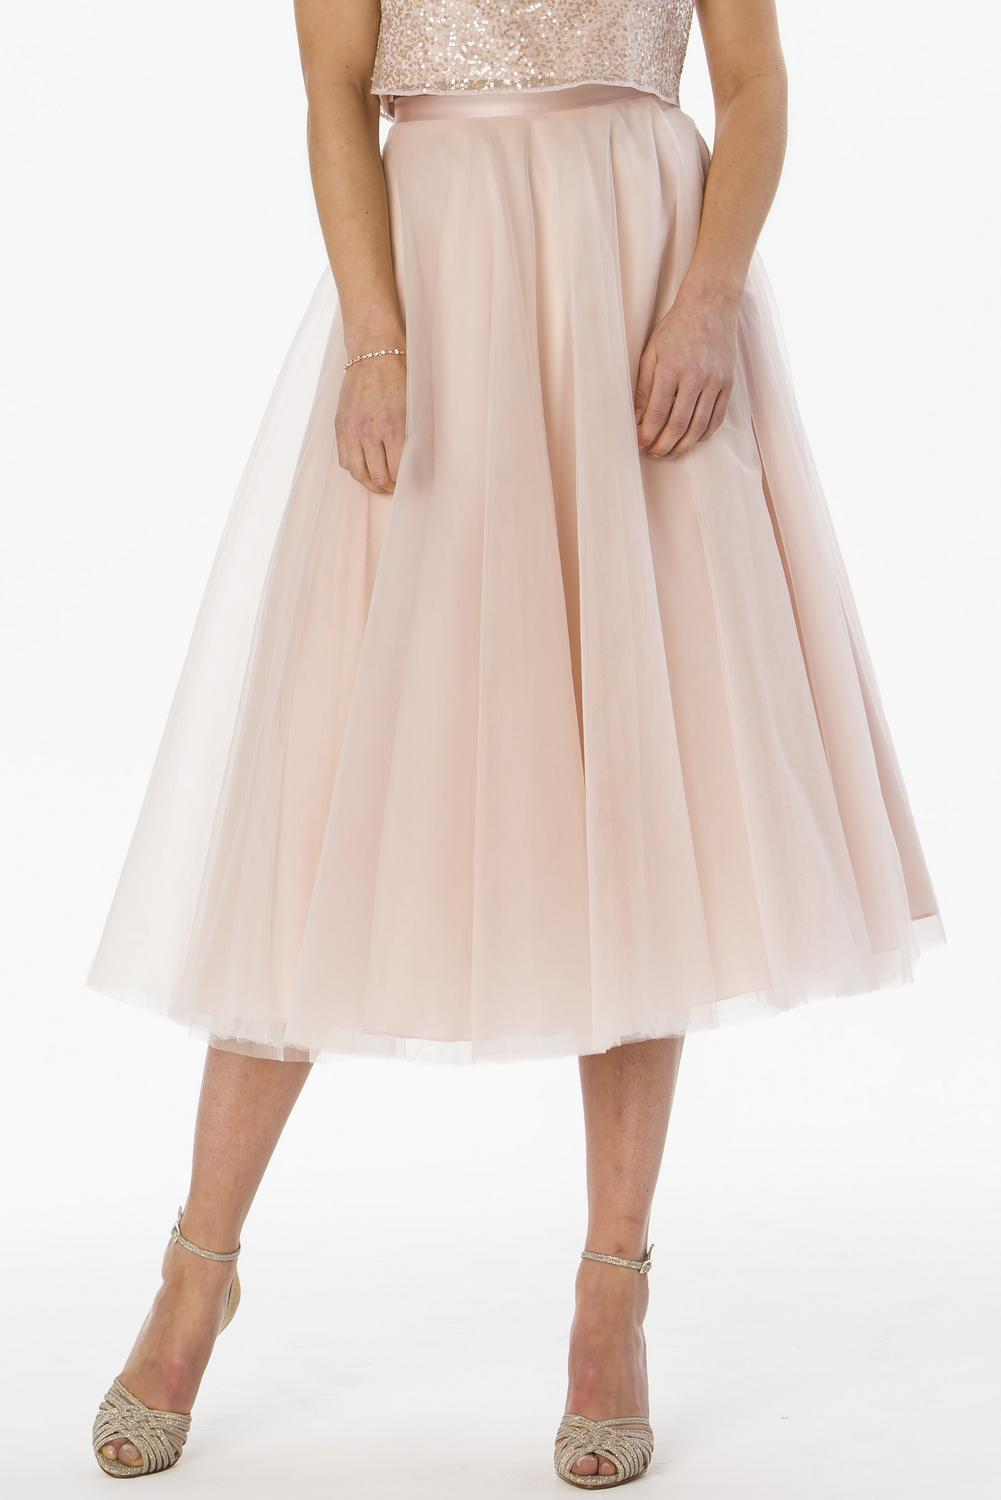 tb-bs105 Tulle skirt